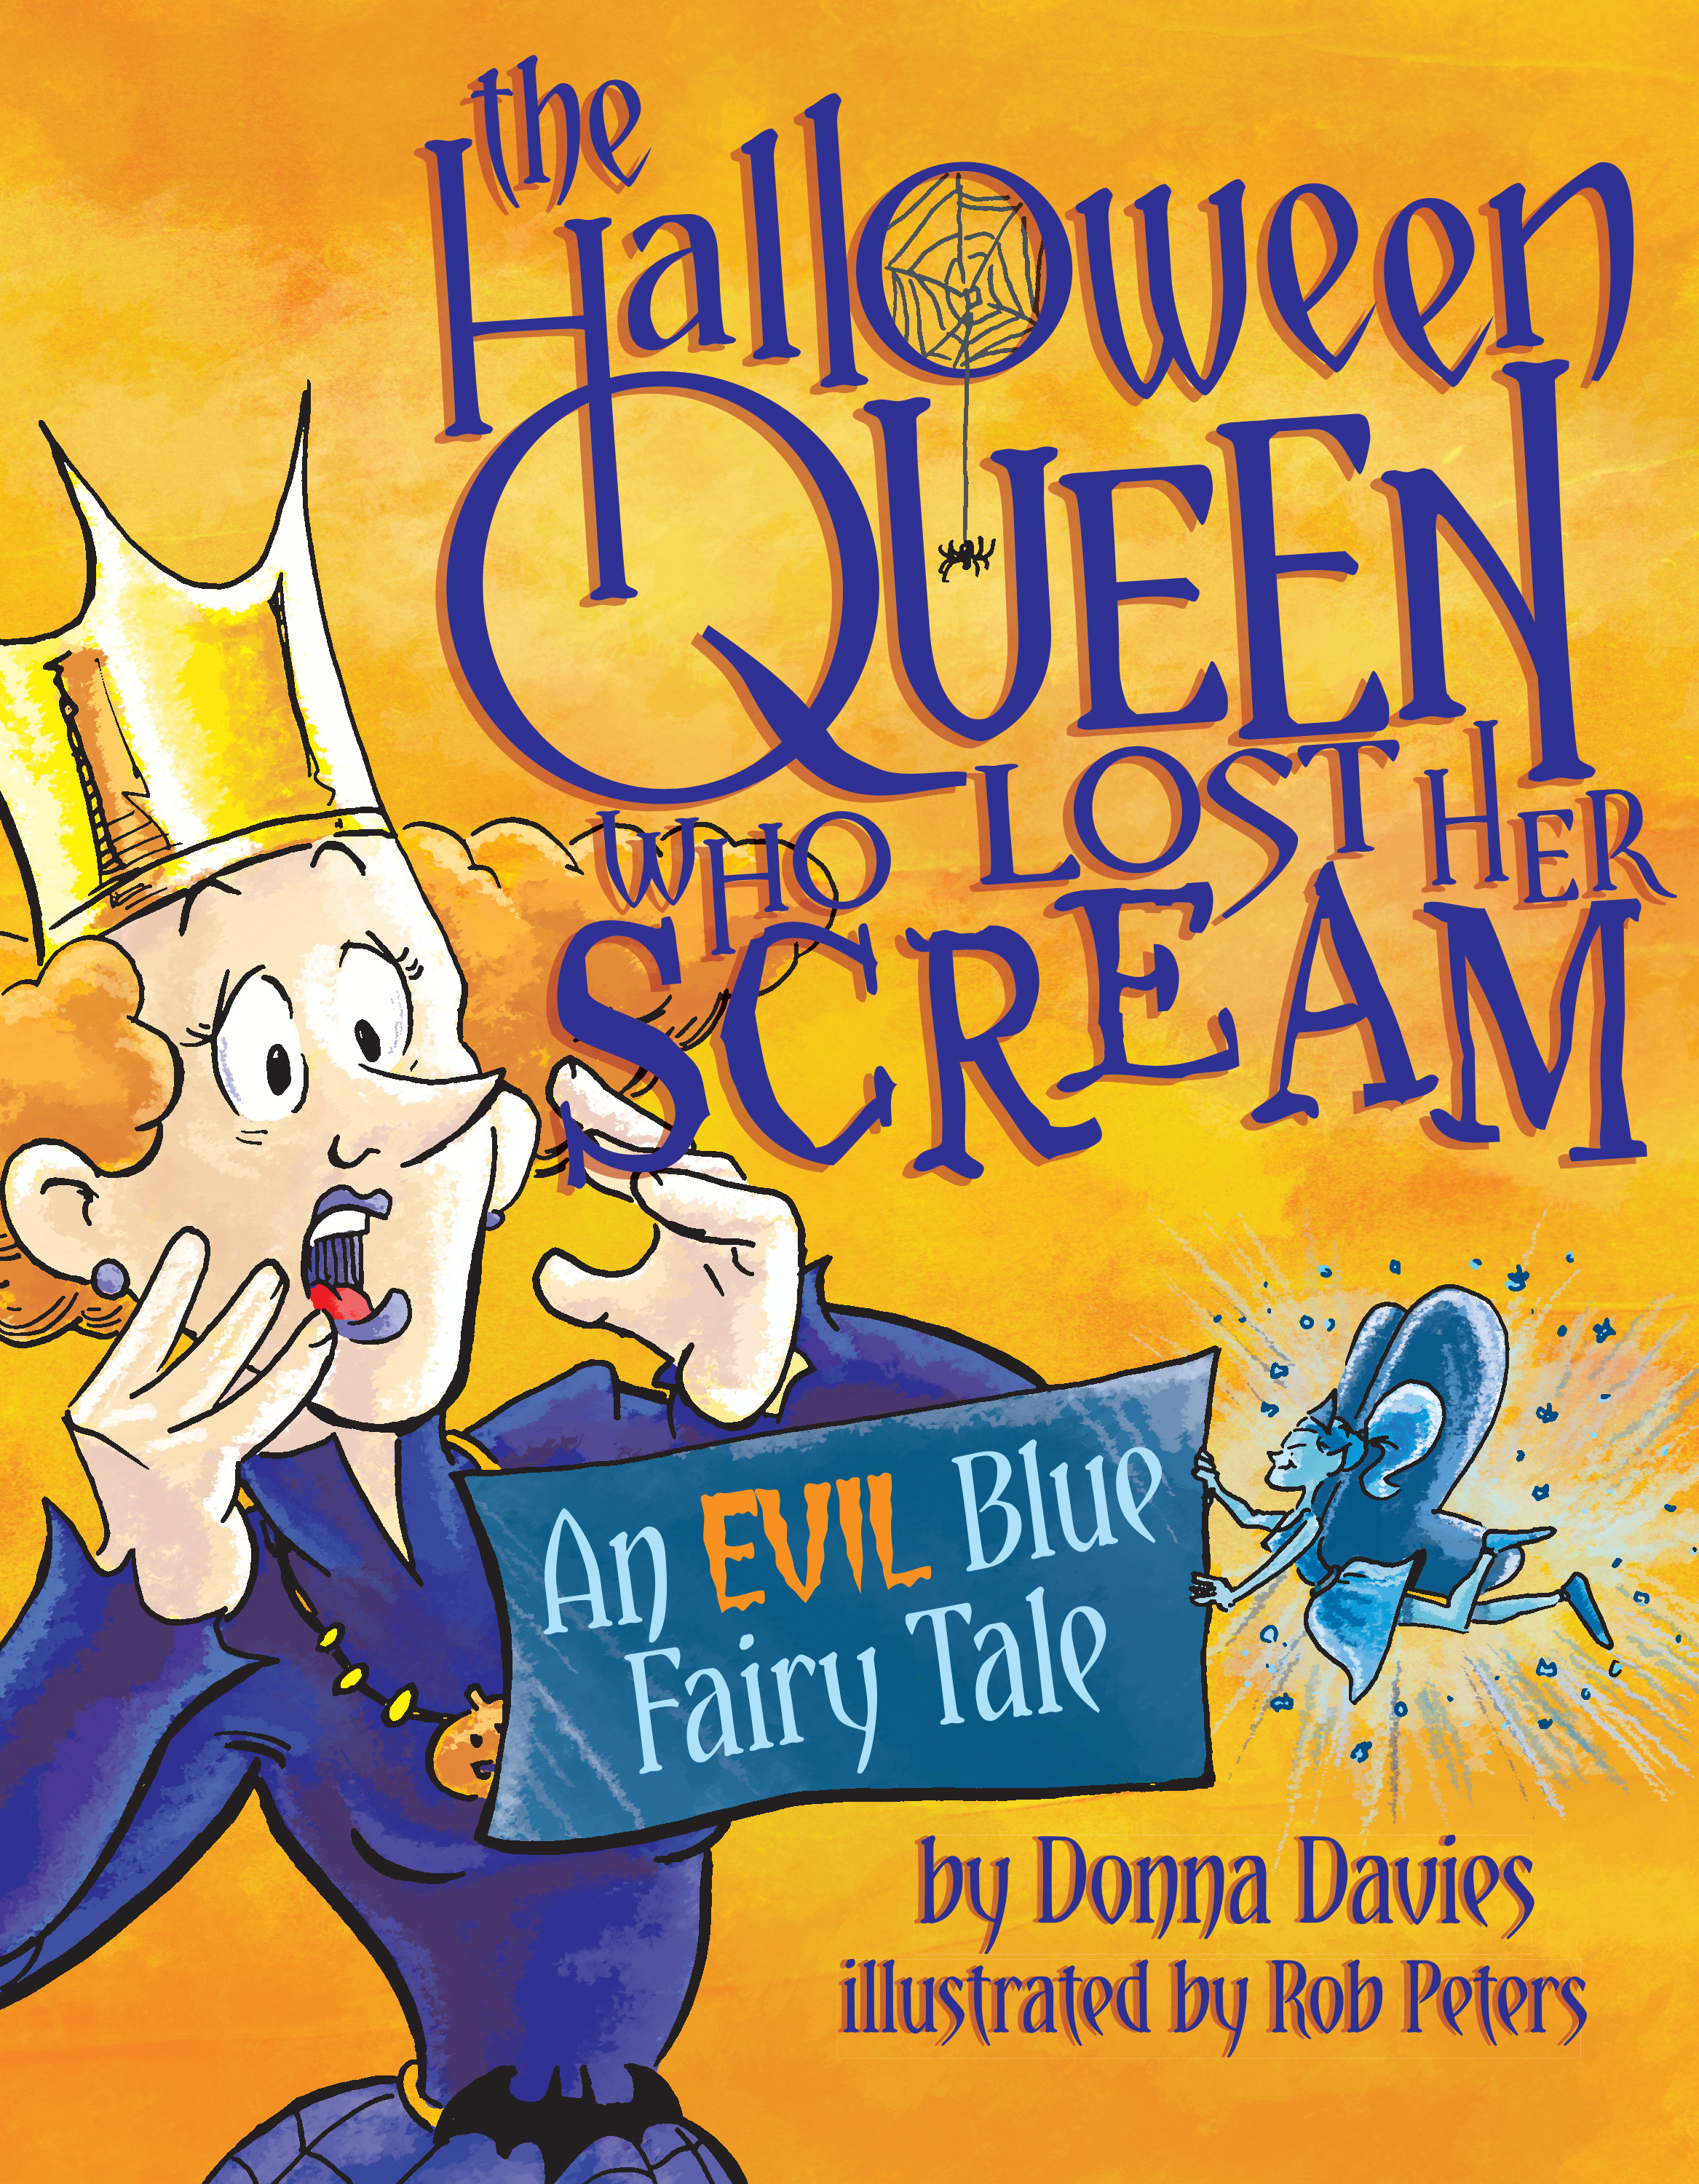 HalloweenQueenCover_Front.jpg